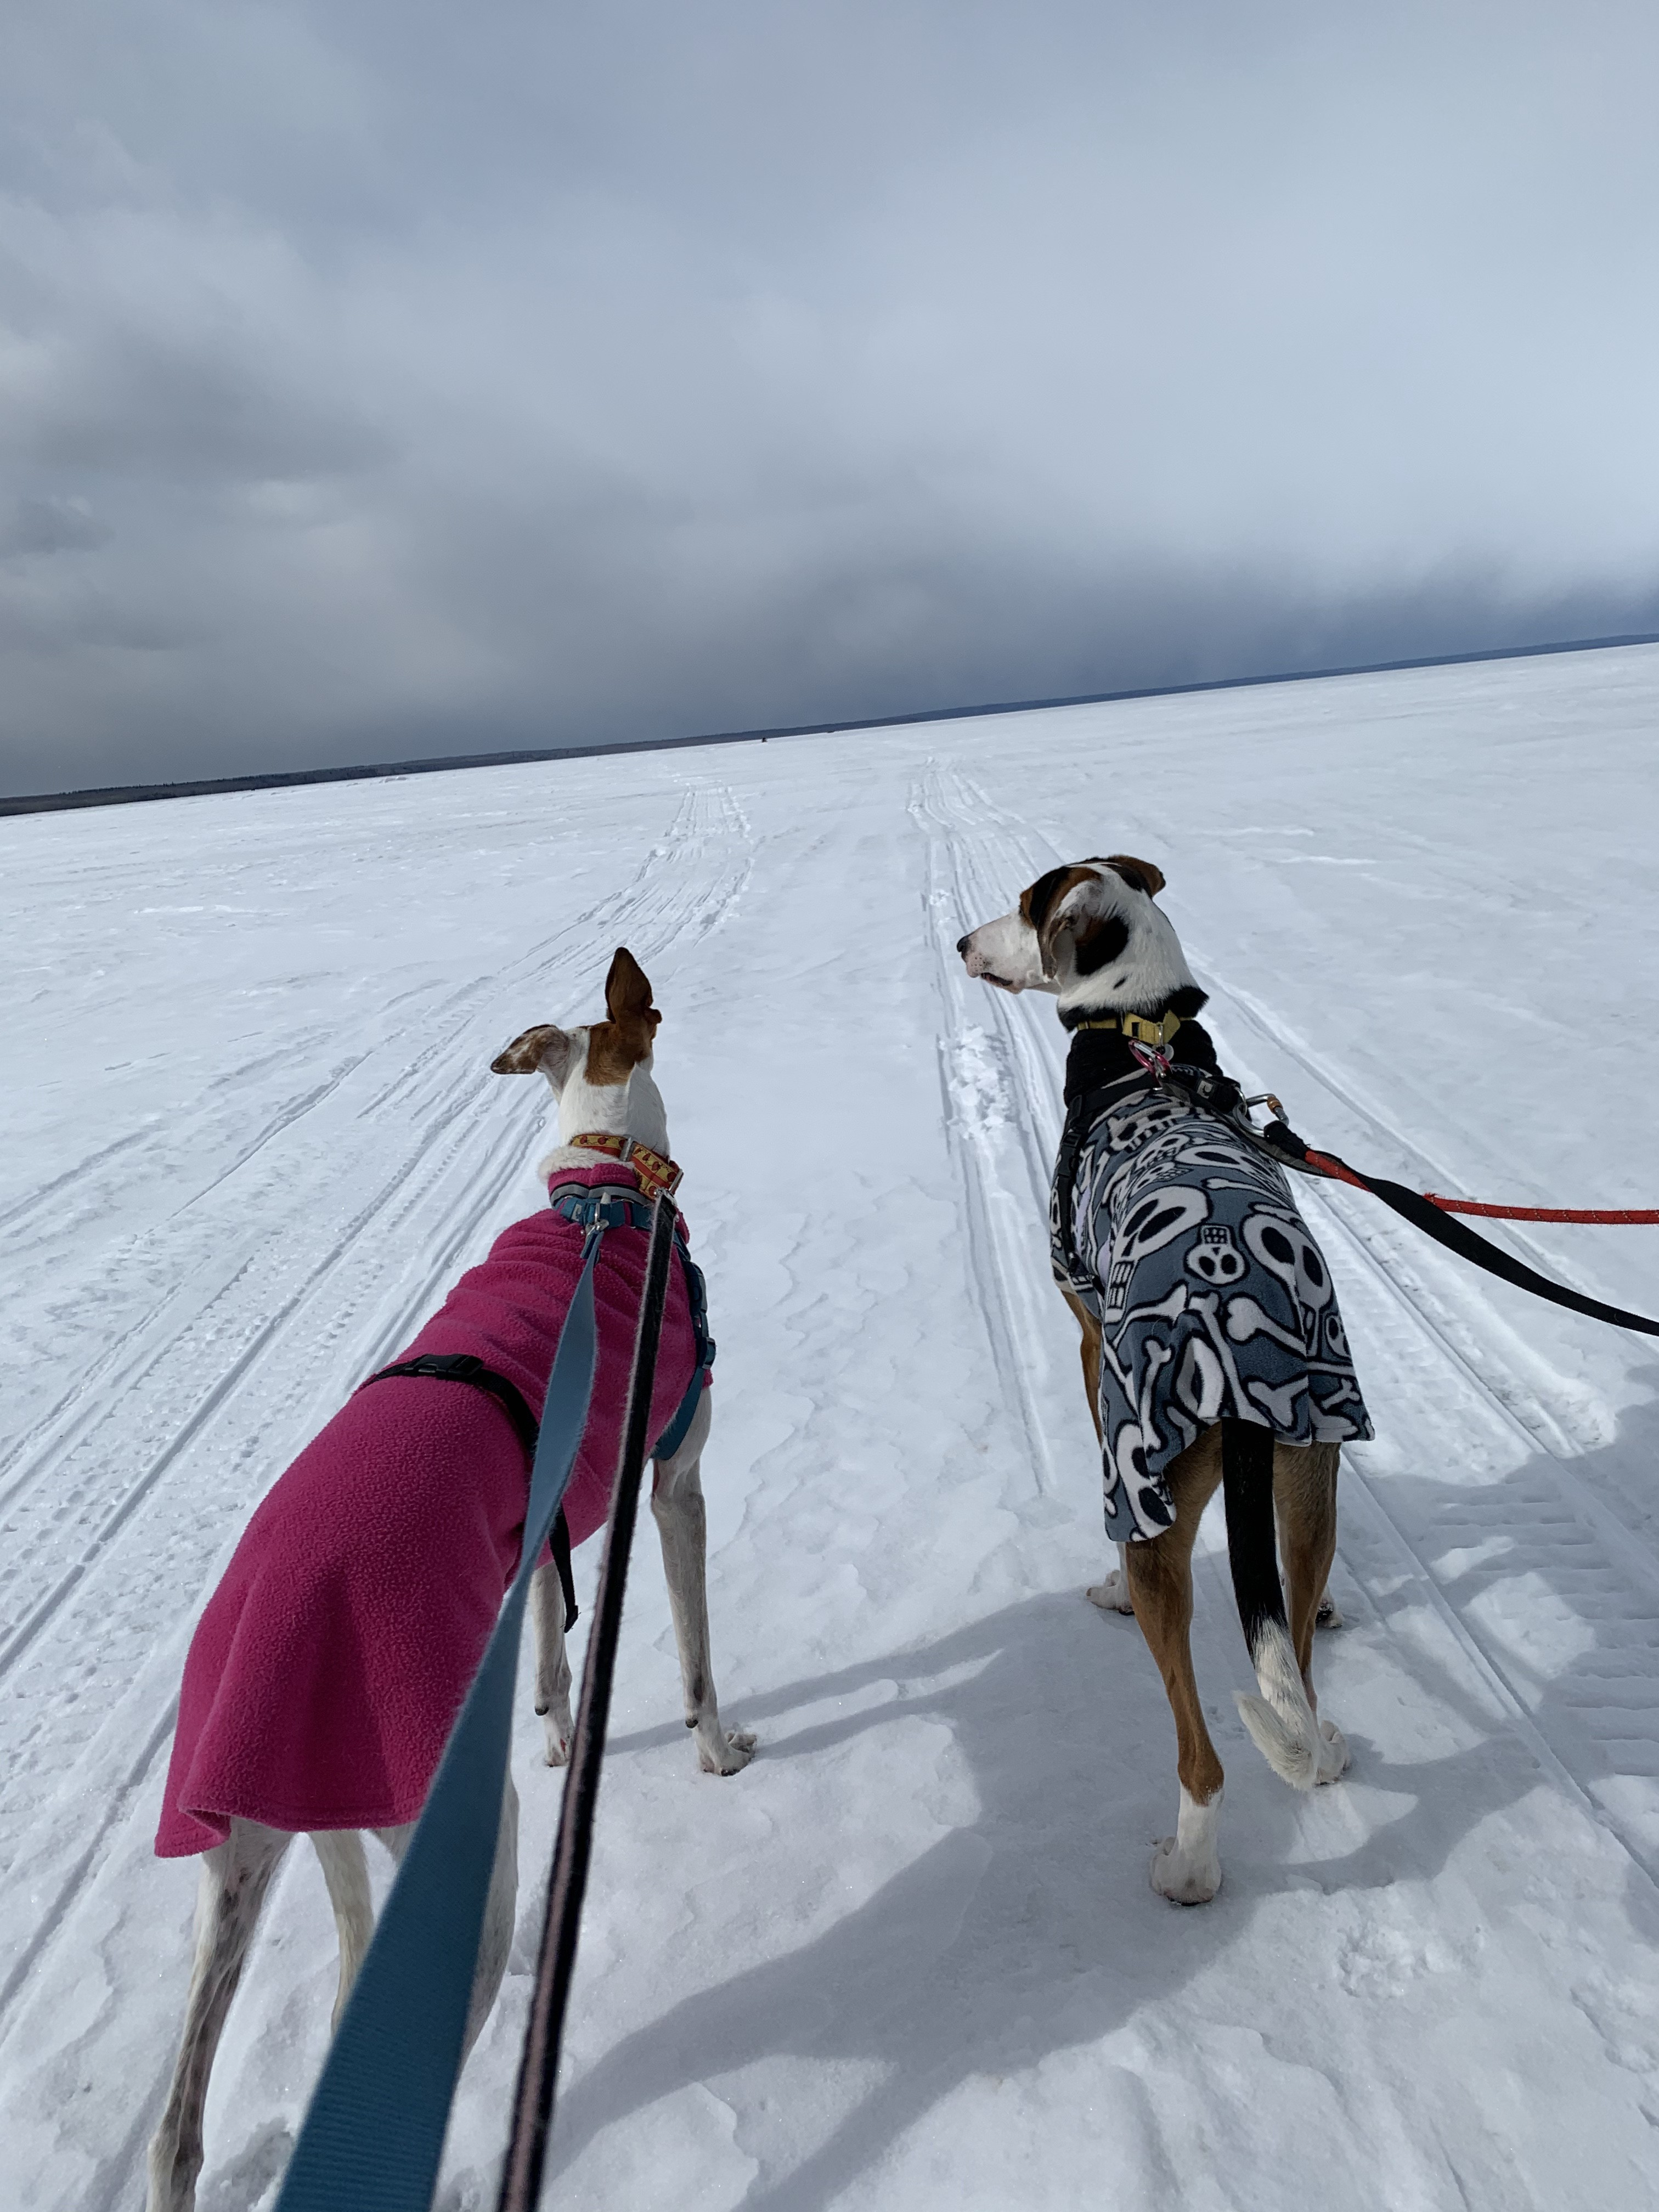 Two beautiful large dogs in winter coats are in the foreground facing the background. They are leashed and standing on a frozen snowy lake, looking out into the misty, cloudy horizon.